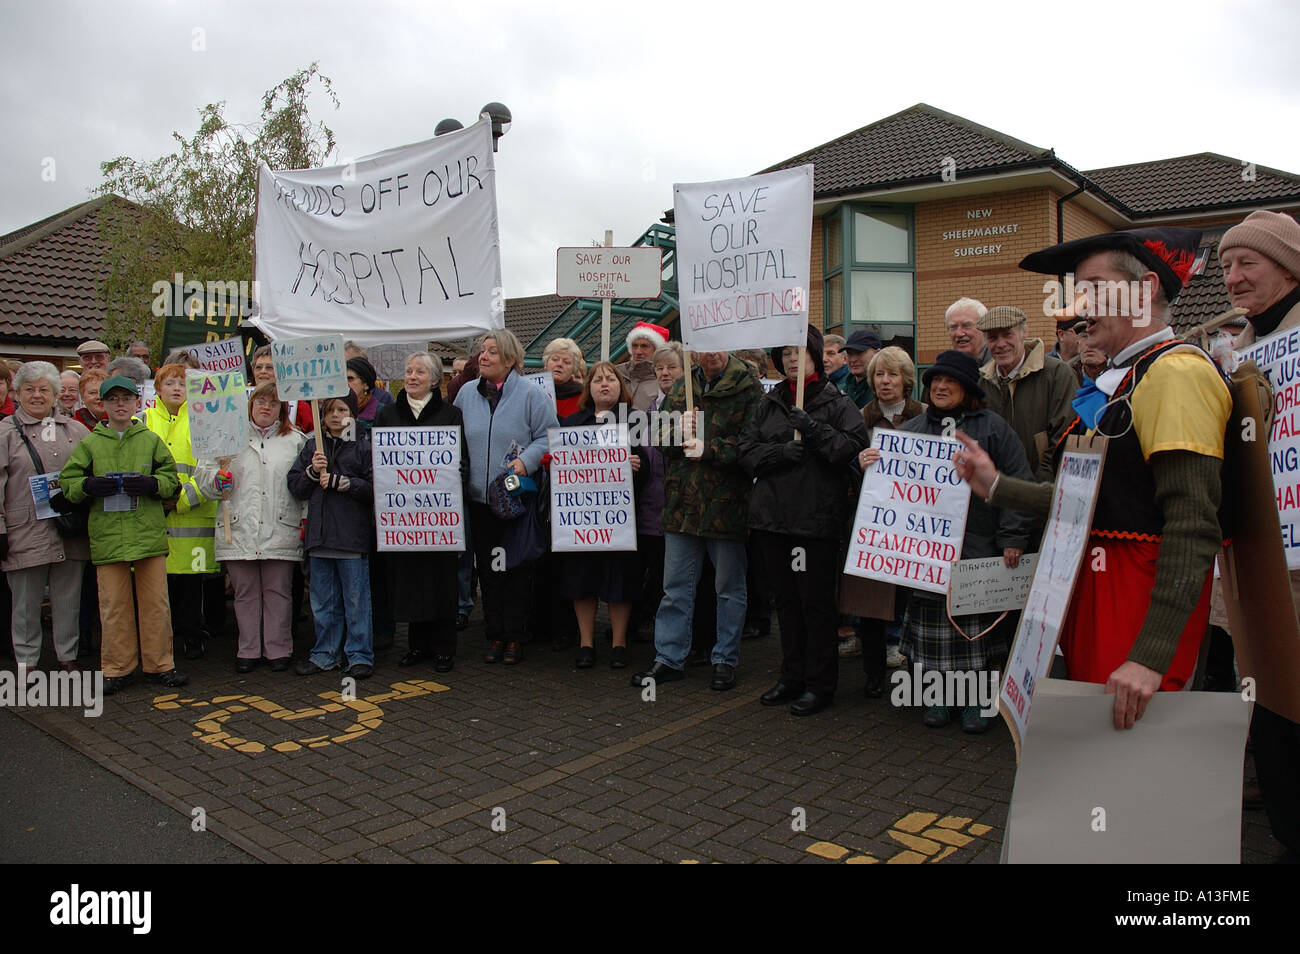 LOCAL HOSPITAL PROTEST - Stock Image